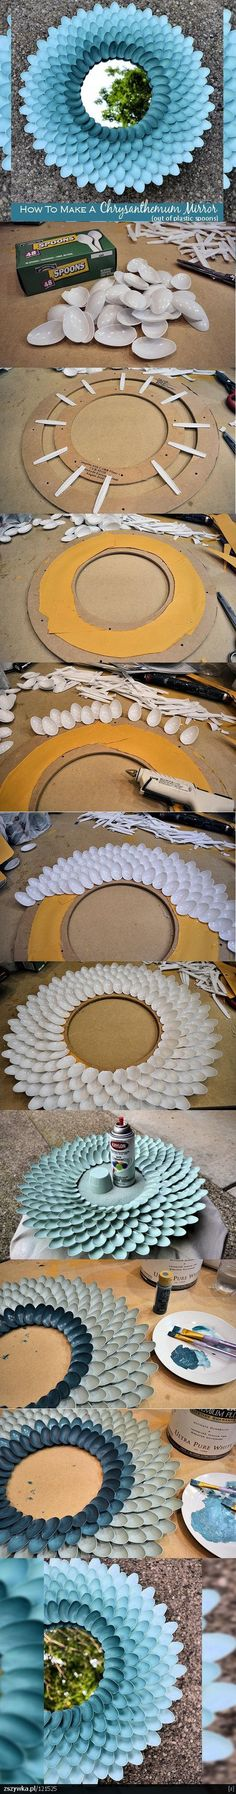 amazing ---> plastic spoons into chrysanthemum mirror